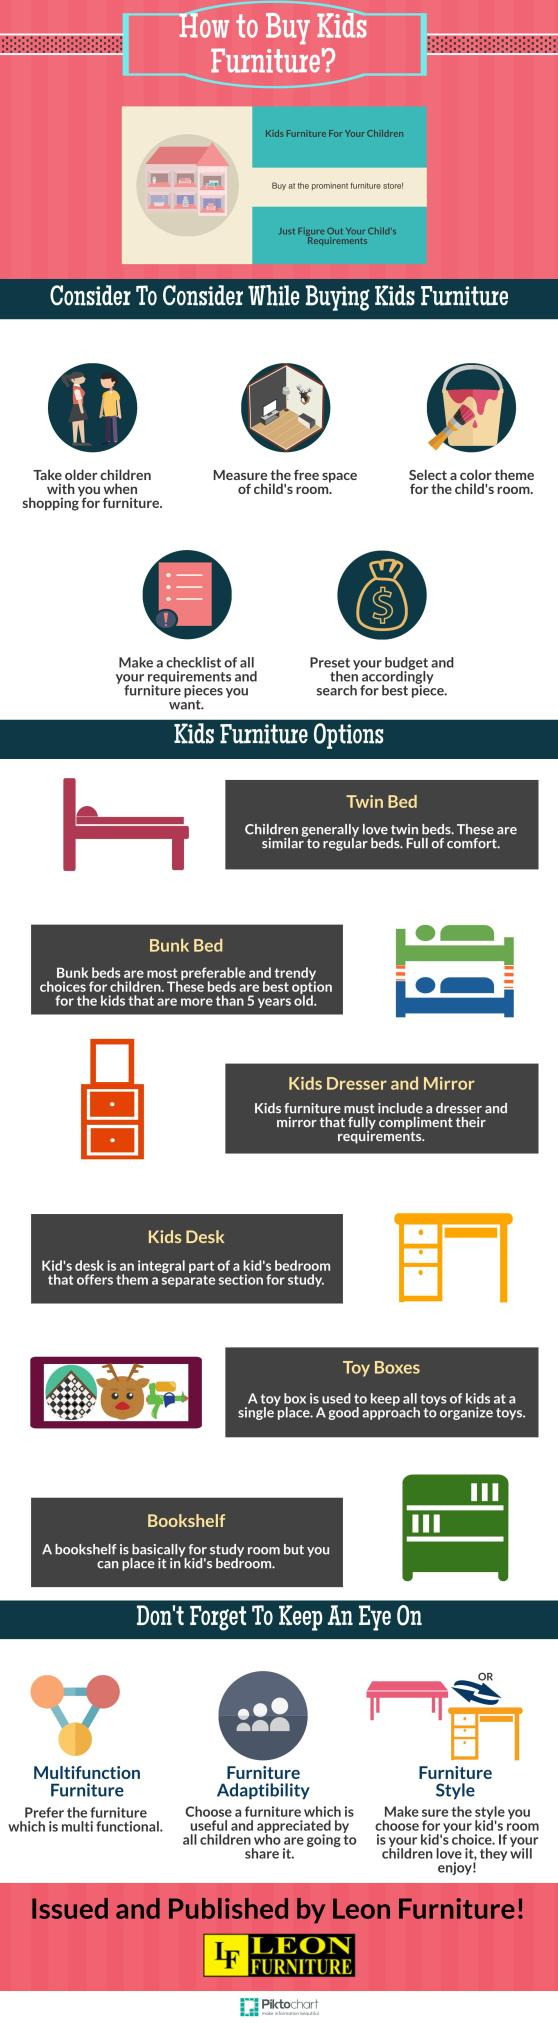 How to Buy Kids Furniture